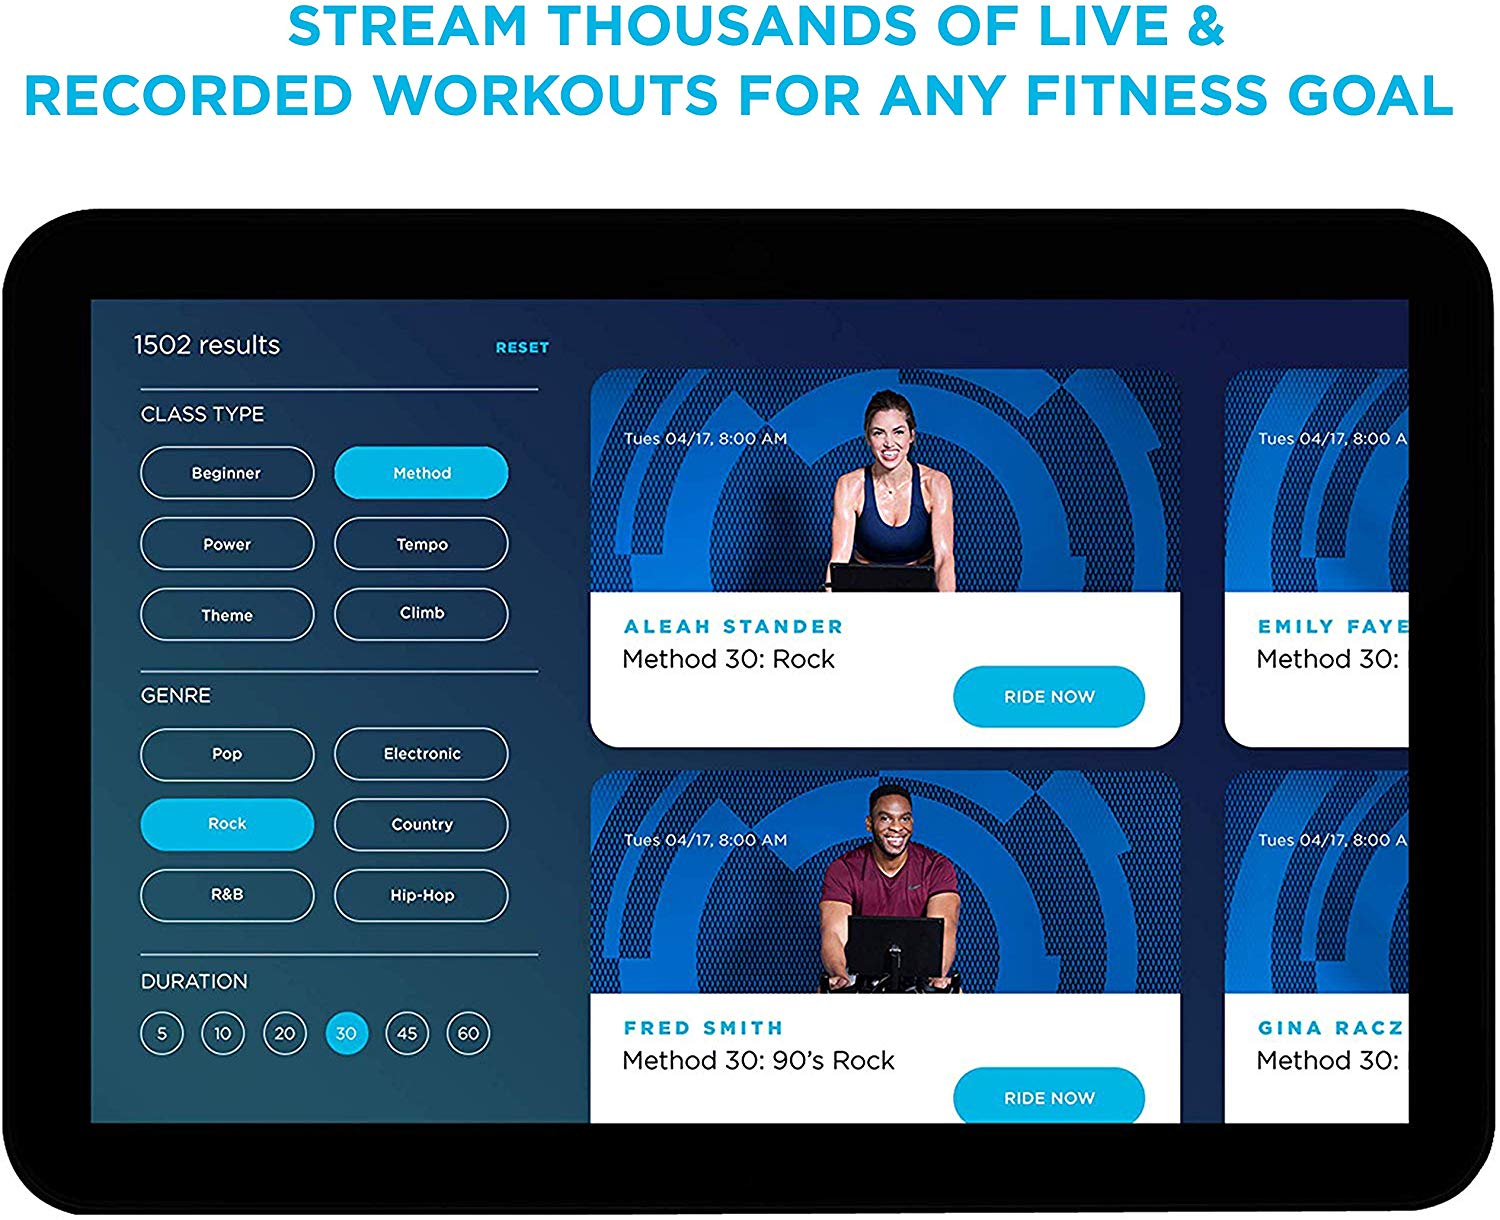 a look at their app and workouts